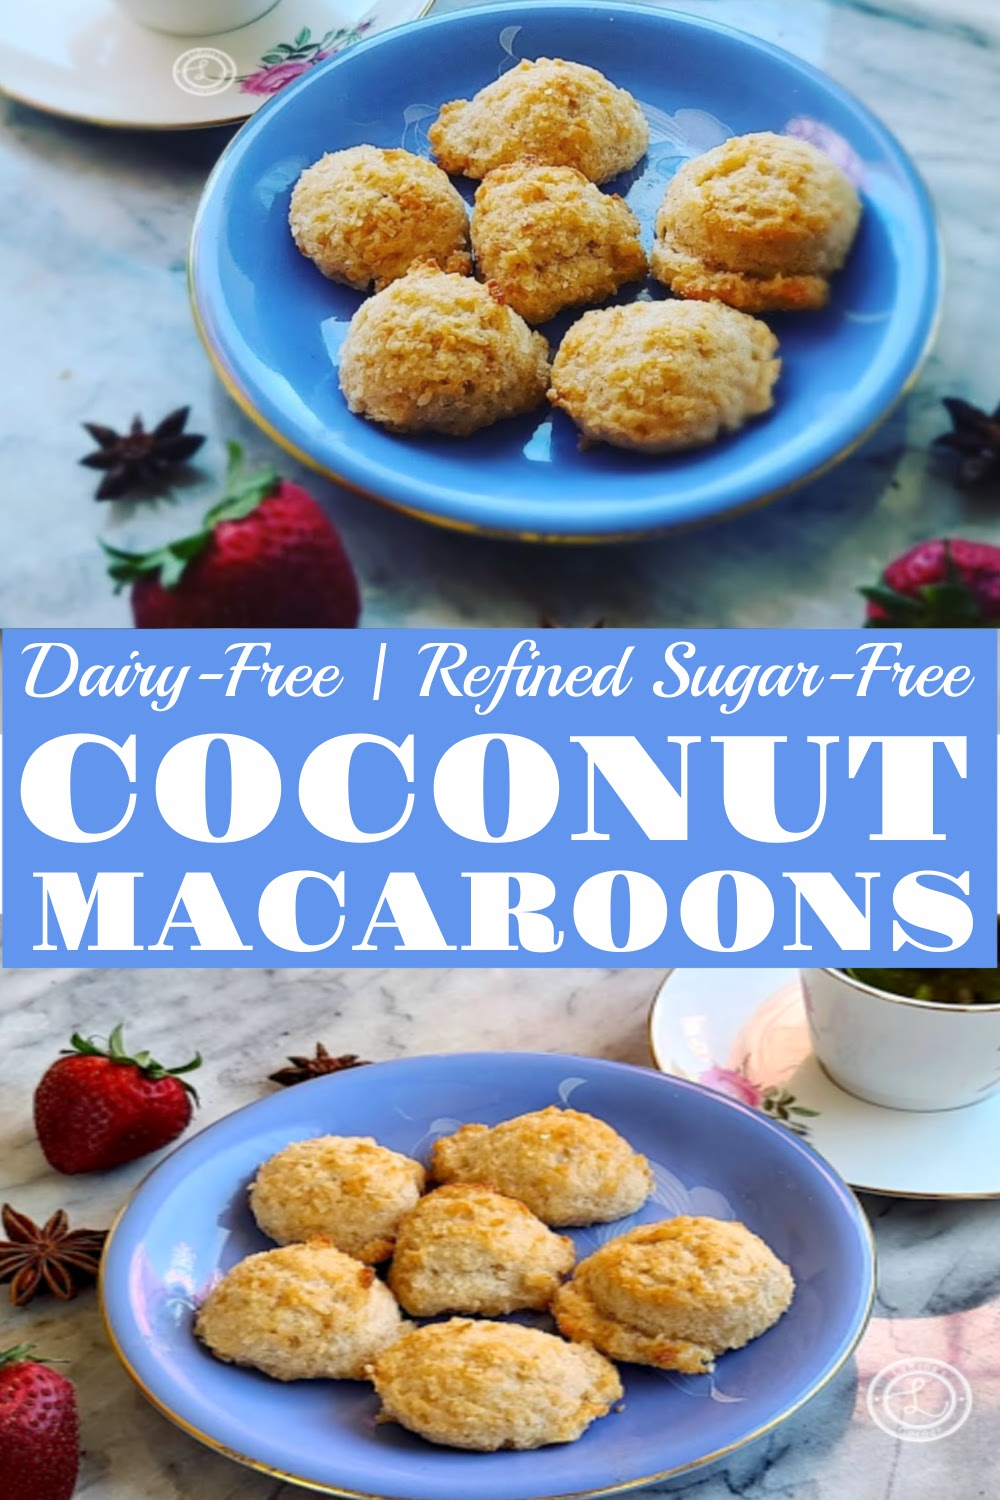 Dairy-Free Coconut Macaroons. 2 pictures of macaroons on plates.